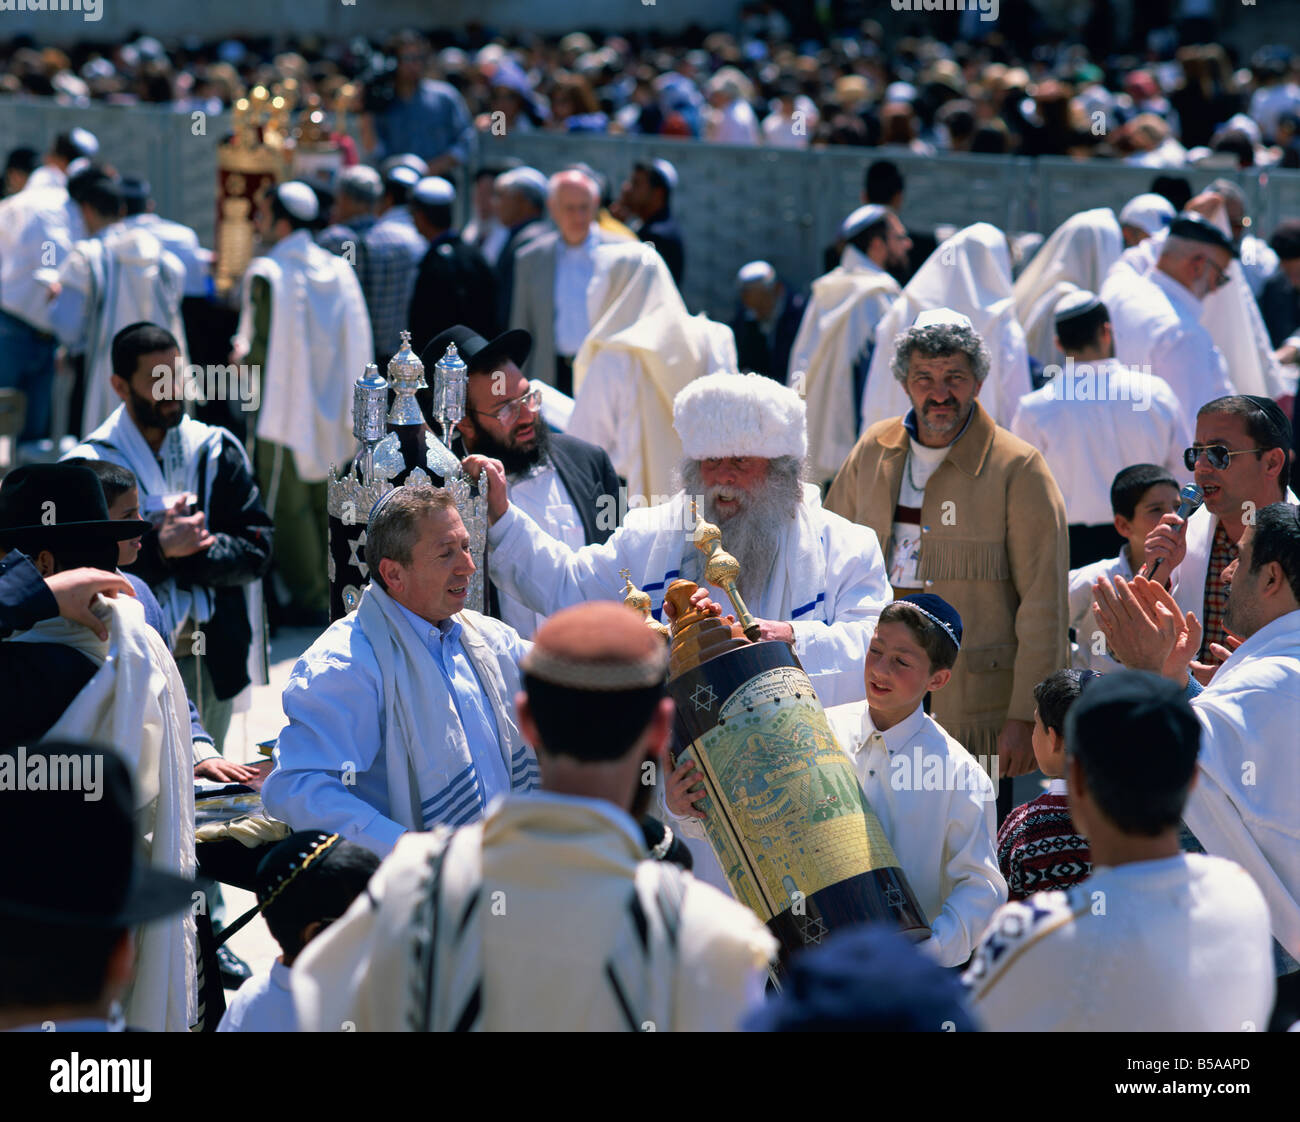 A Bar Mitzvah celebration near the Wailing Wall, Jerusalem, Israel, Middle East - Stock Image